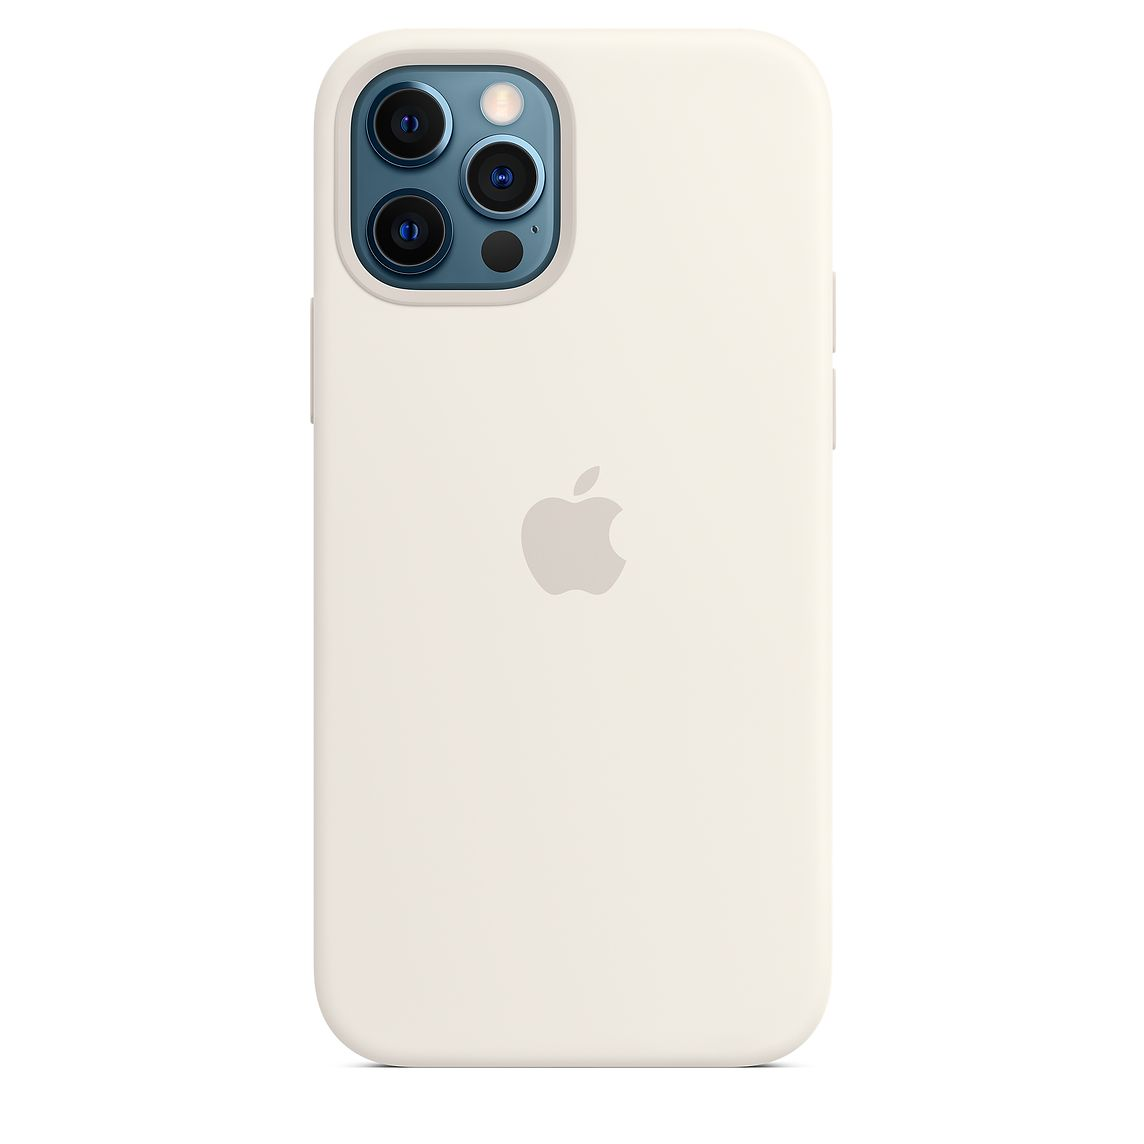 - iPhone 12 | 12 Pro Silicone Case with MagSafe / Blanco 5